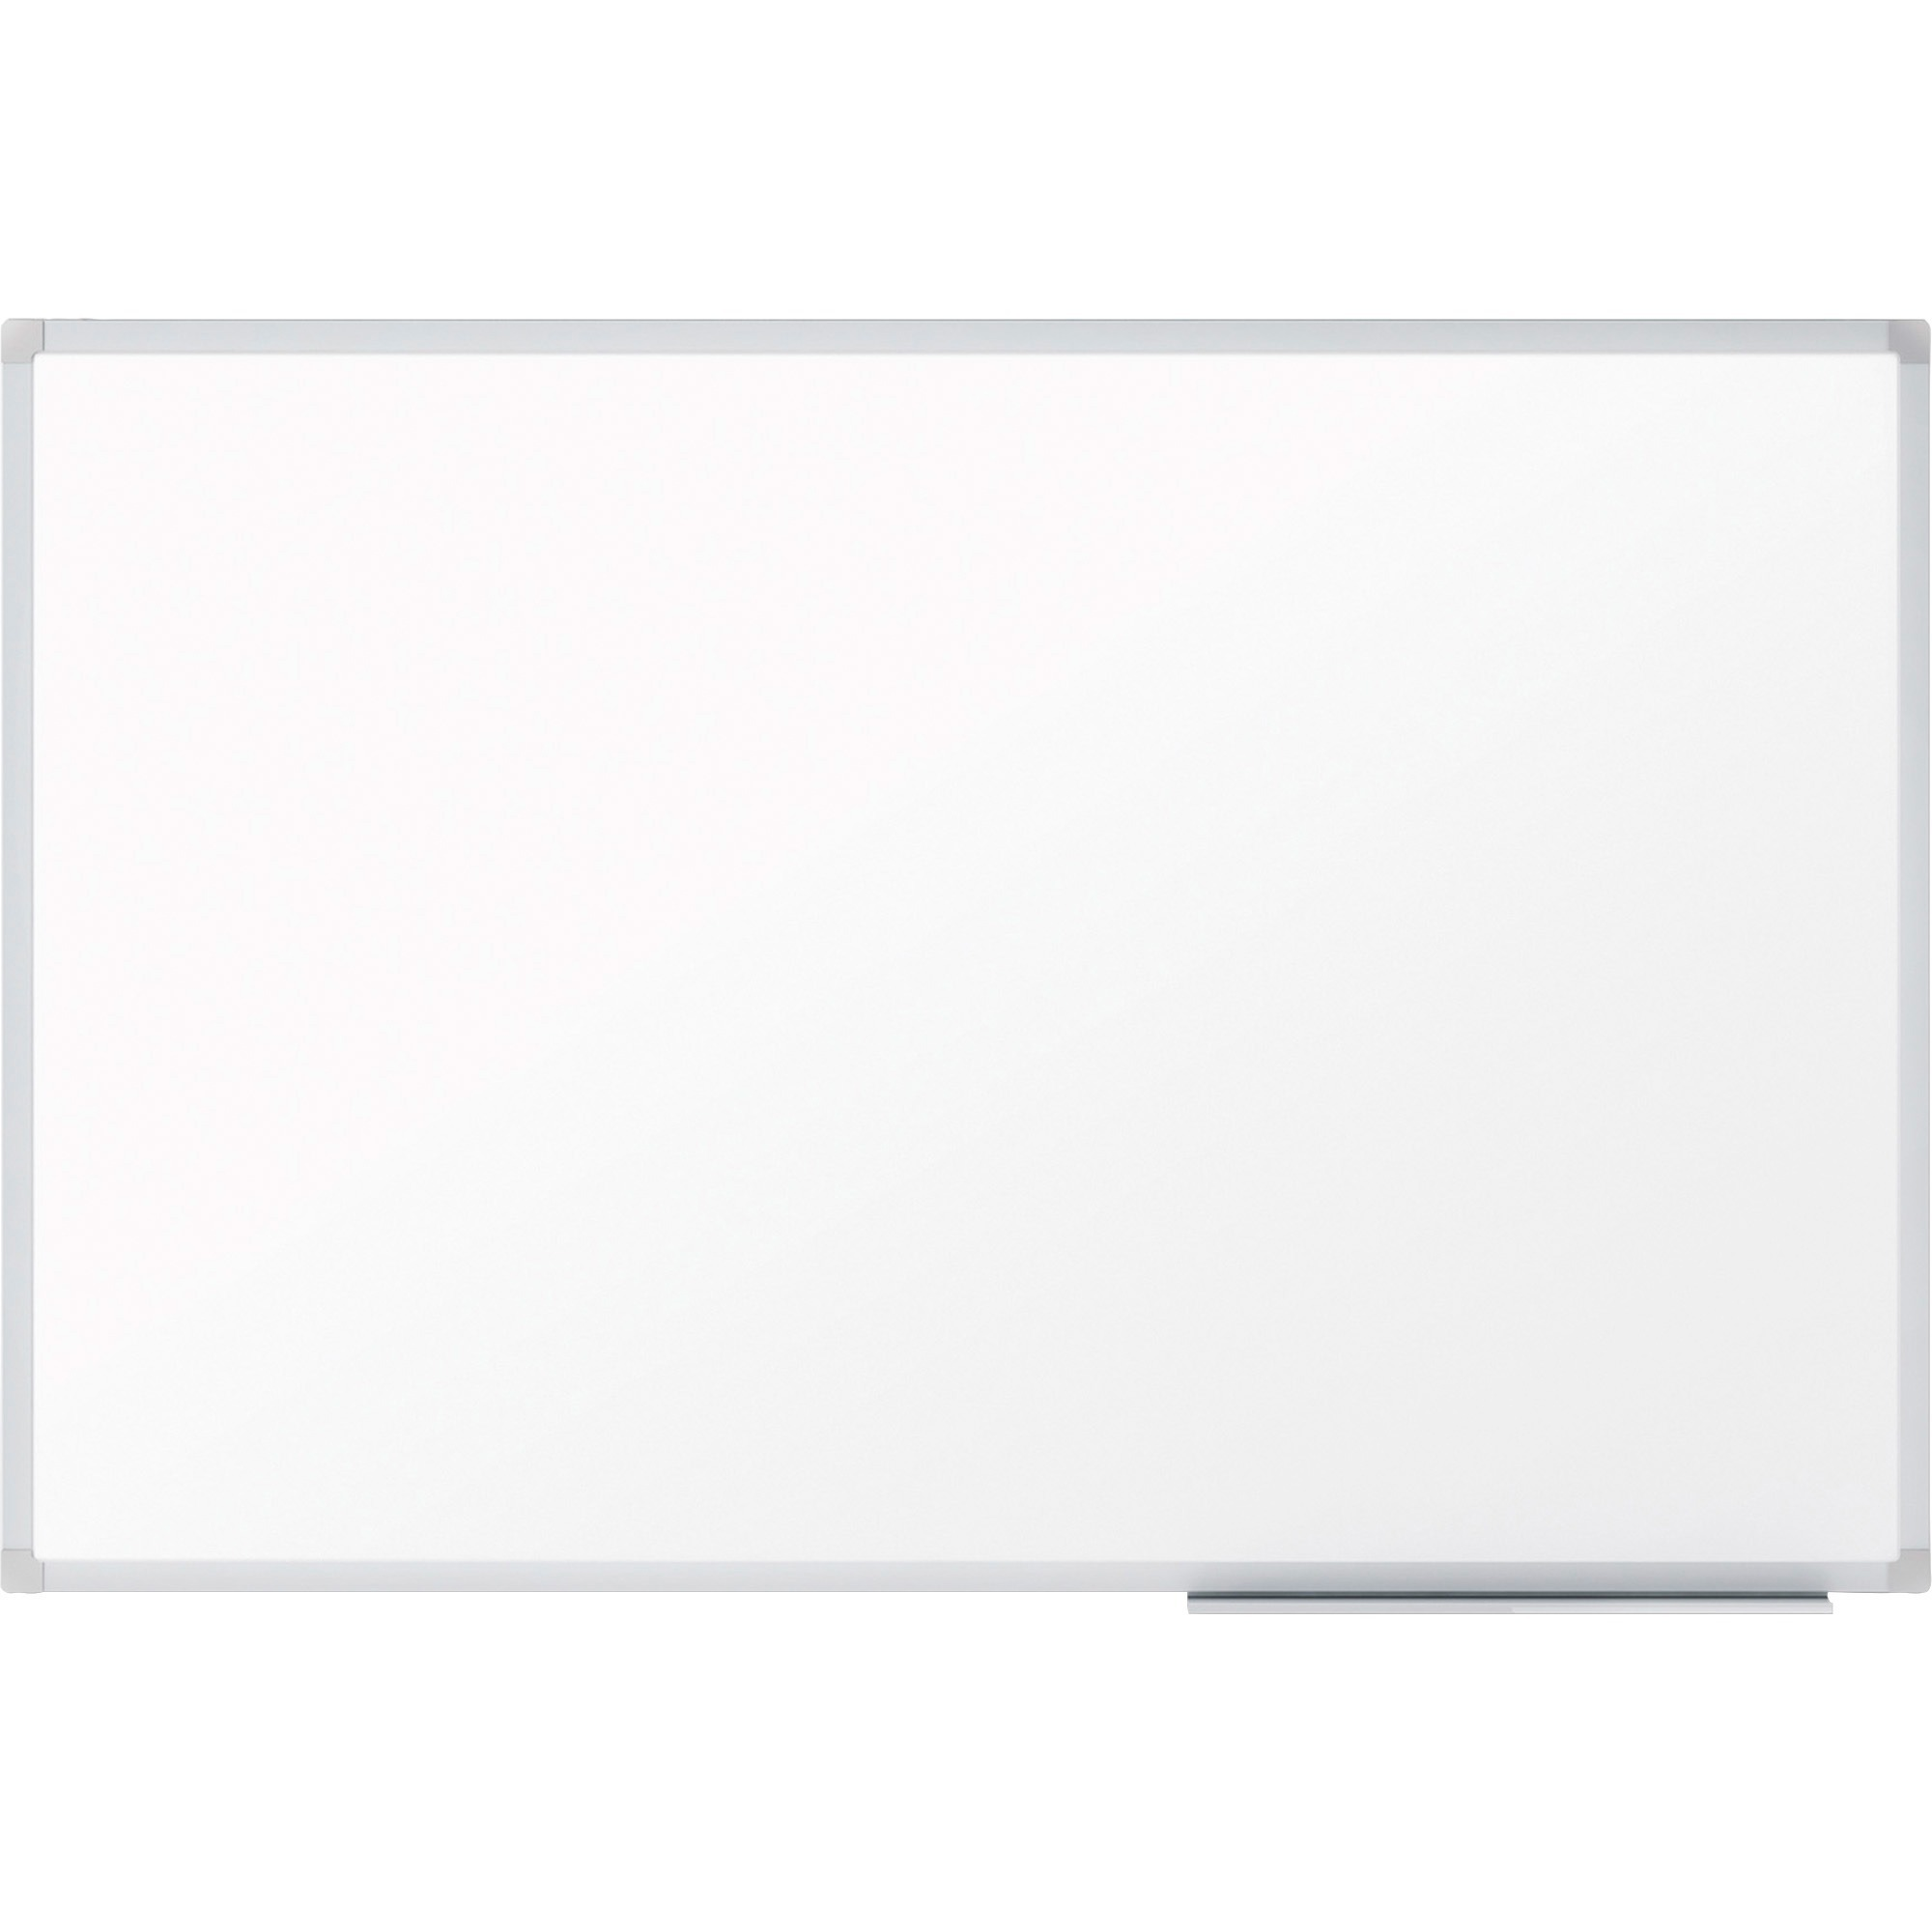 Acco Brands Corporation Mead Dry-erase Board With Marker Tray - 23.8 (2 Ft) Width X 17.6 (1.5 Ft) Height - White Melamine Surface - Silver Aluminum Frame - Wall Mount - 1 Each